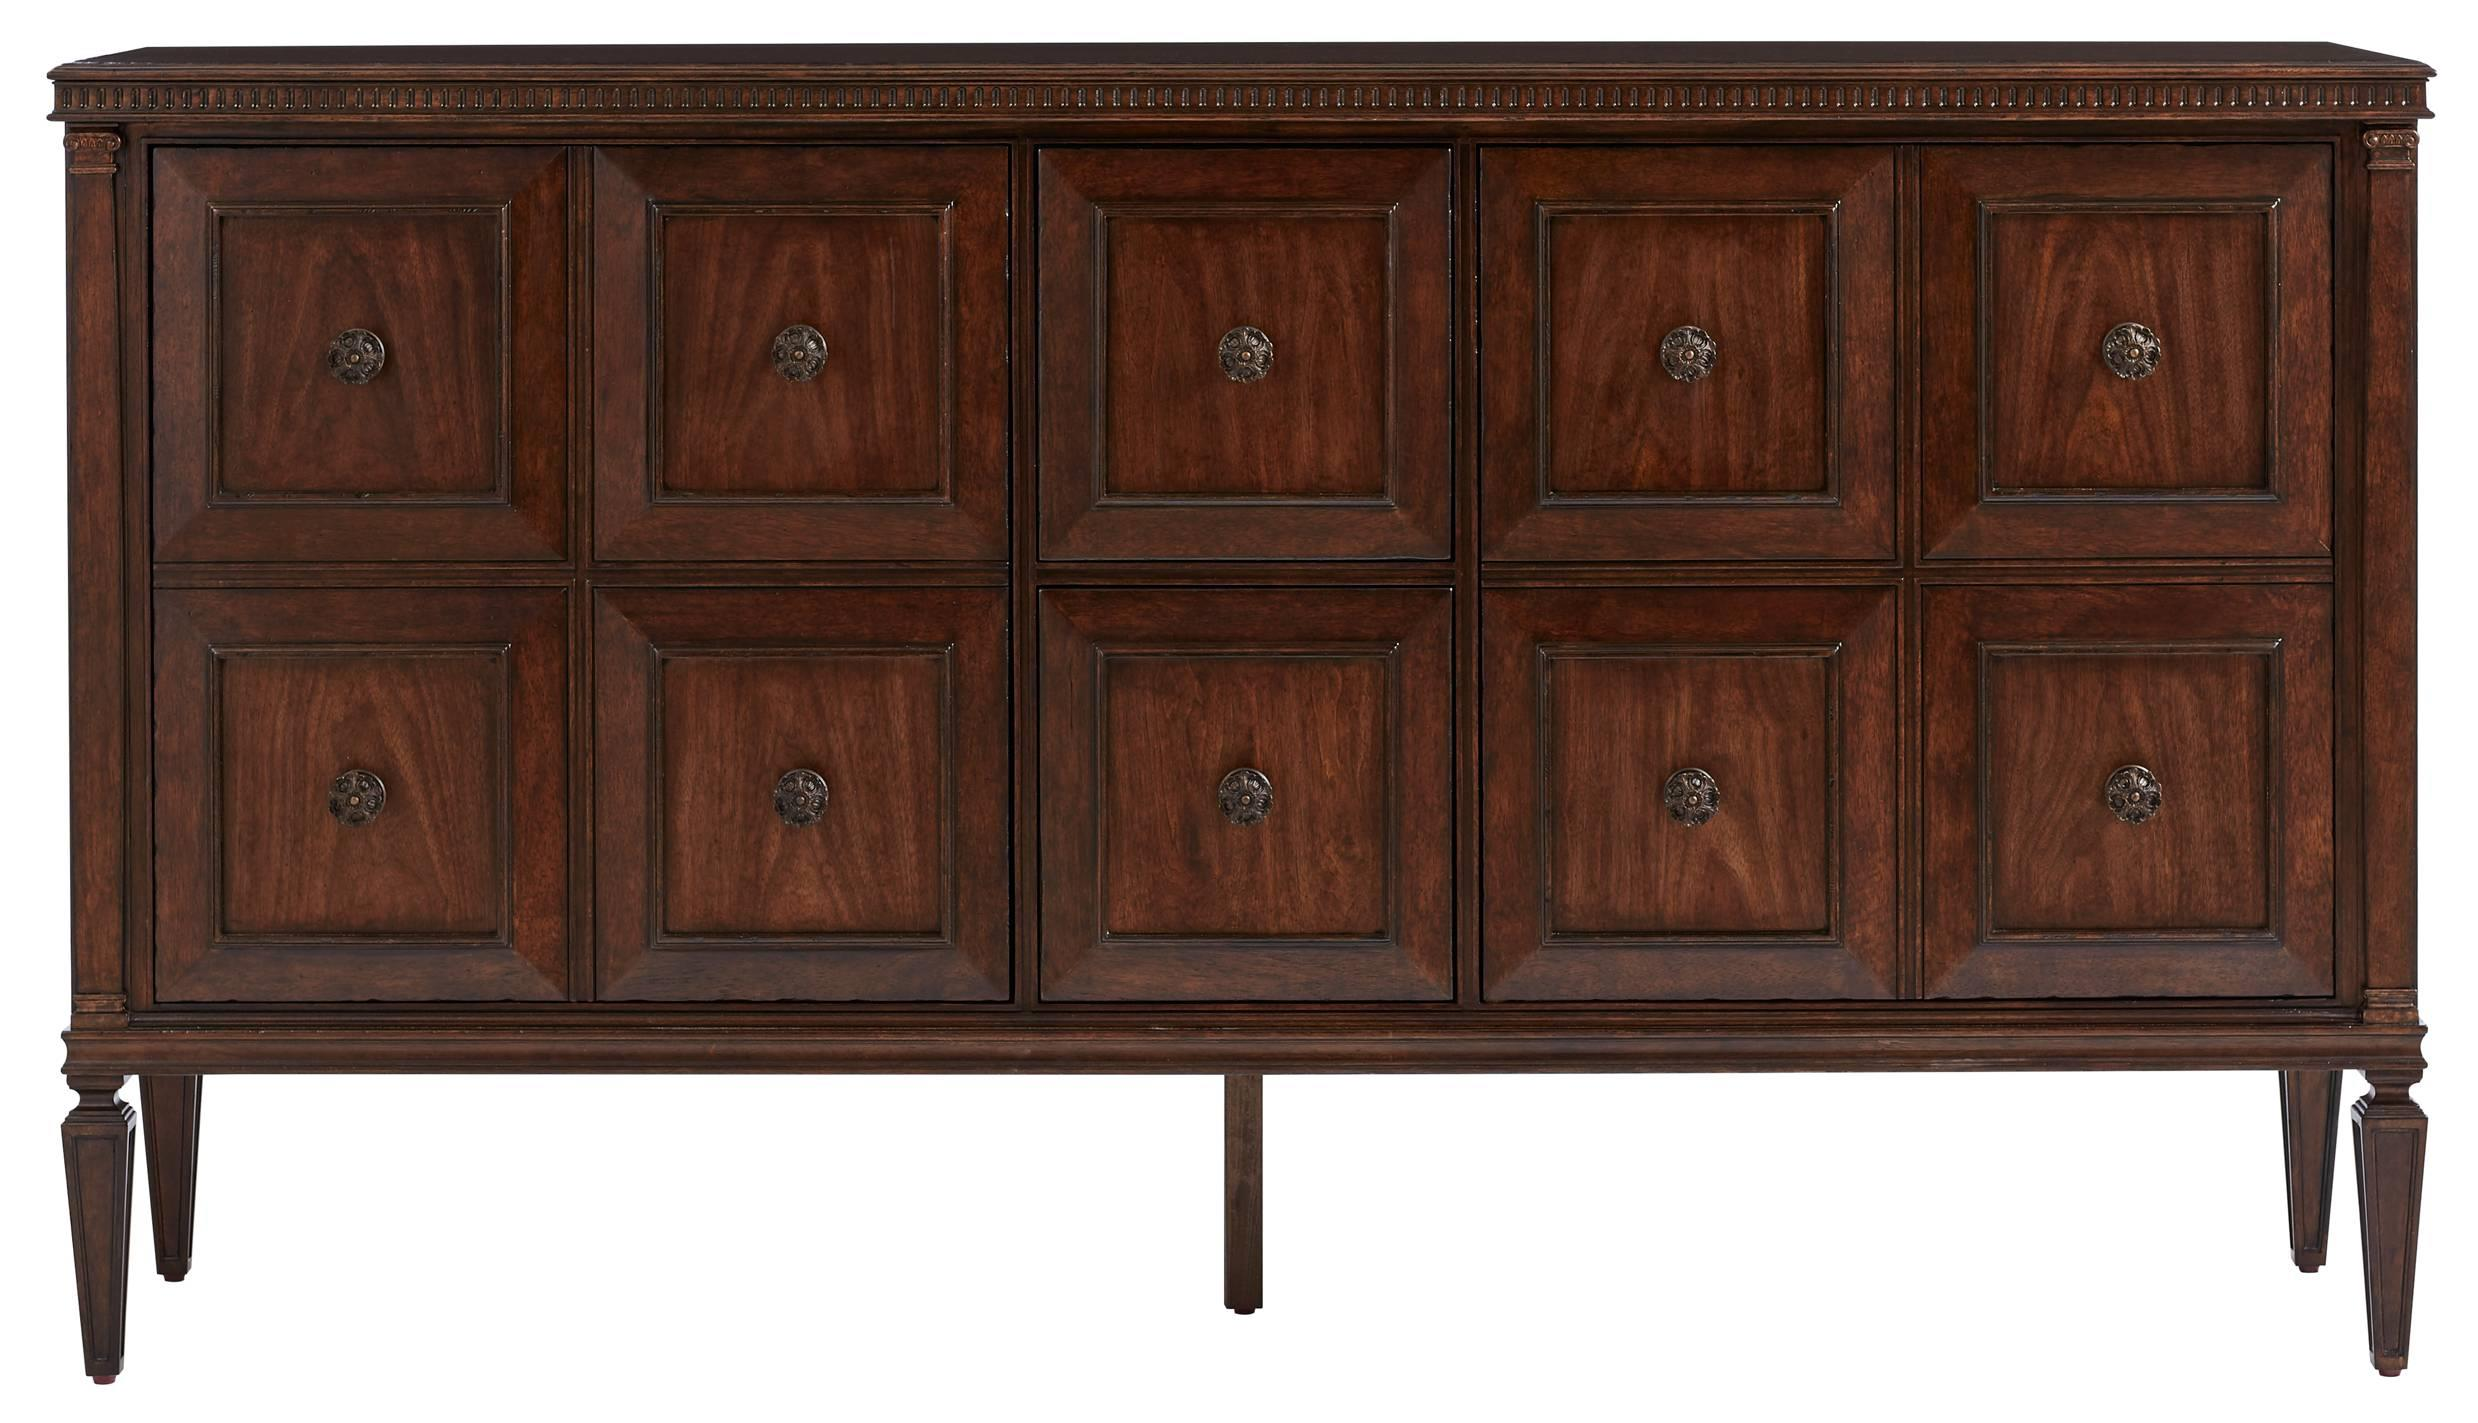 Stanley Furniture Villa Couture Marco Buffet - Item Number: 510-11-05